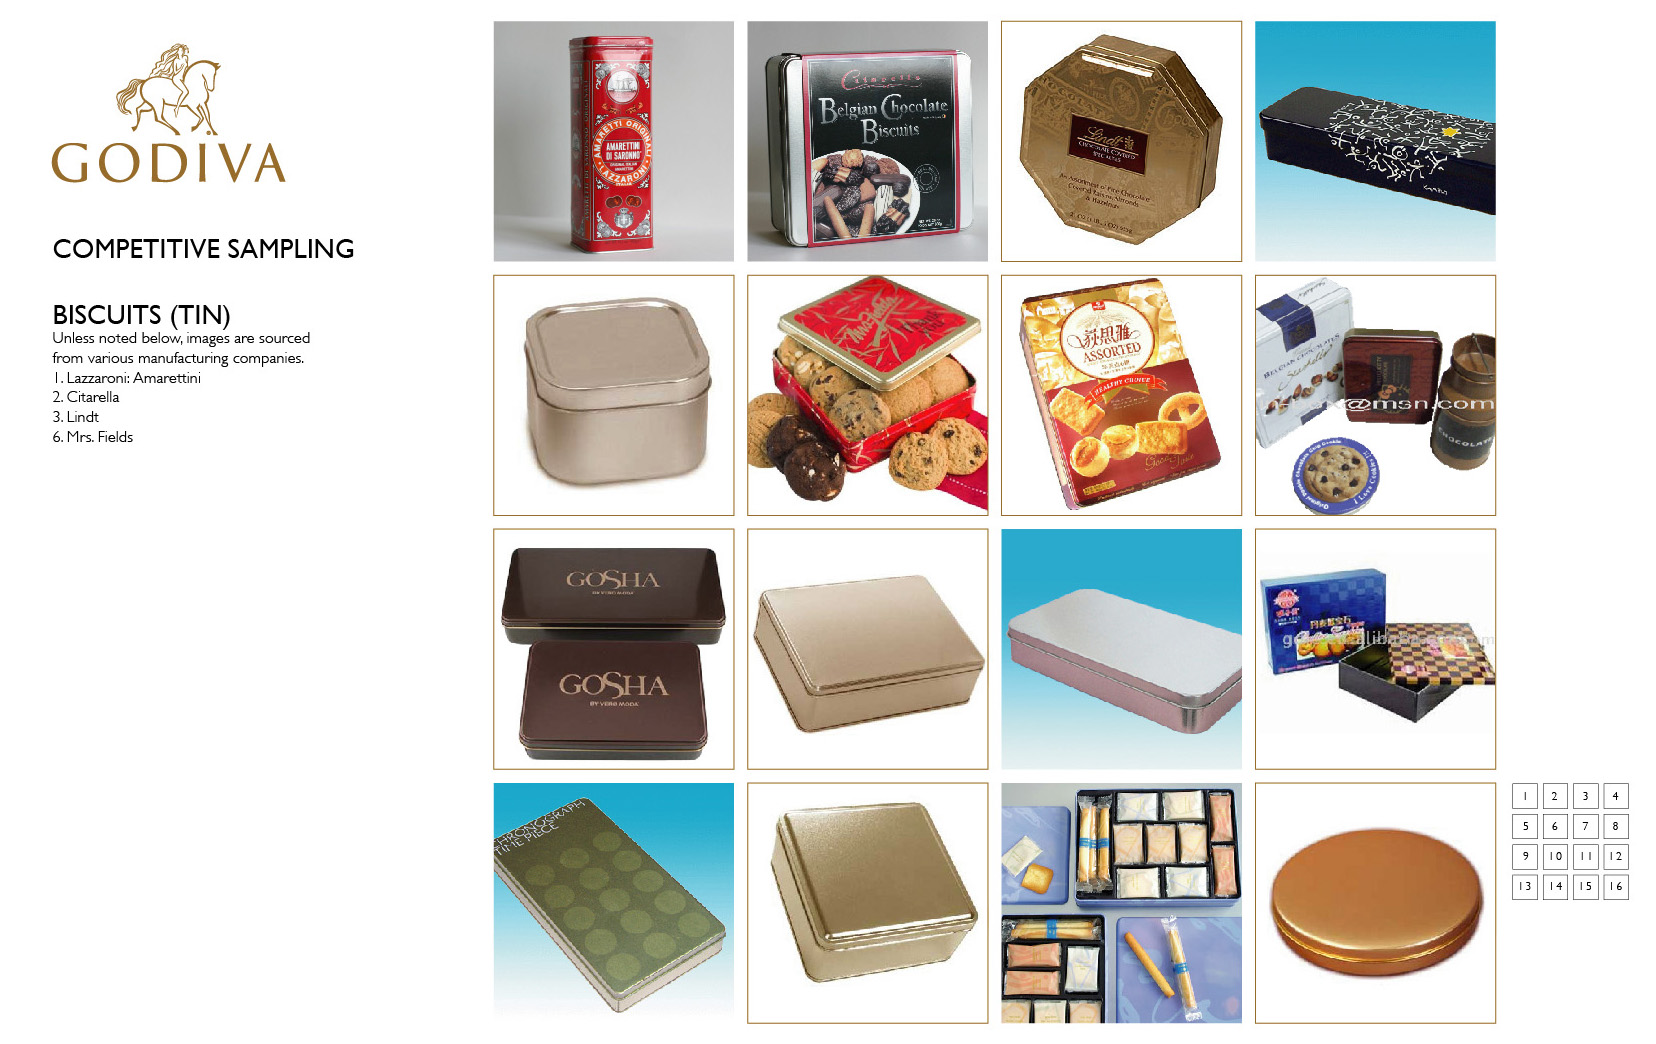 Competitive Sampling - Biscuits (tins)